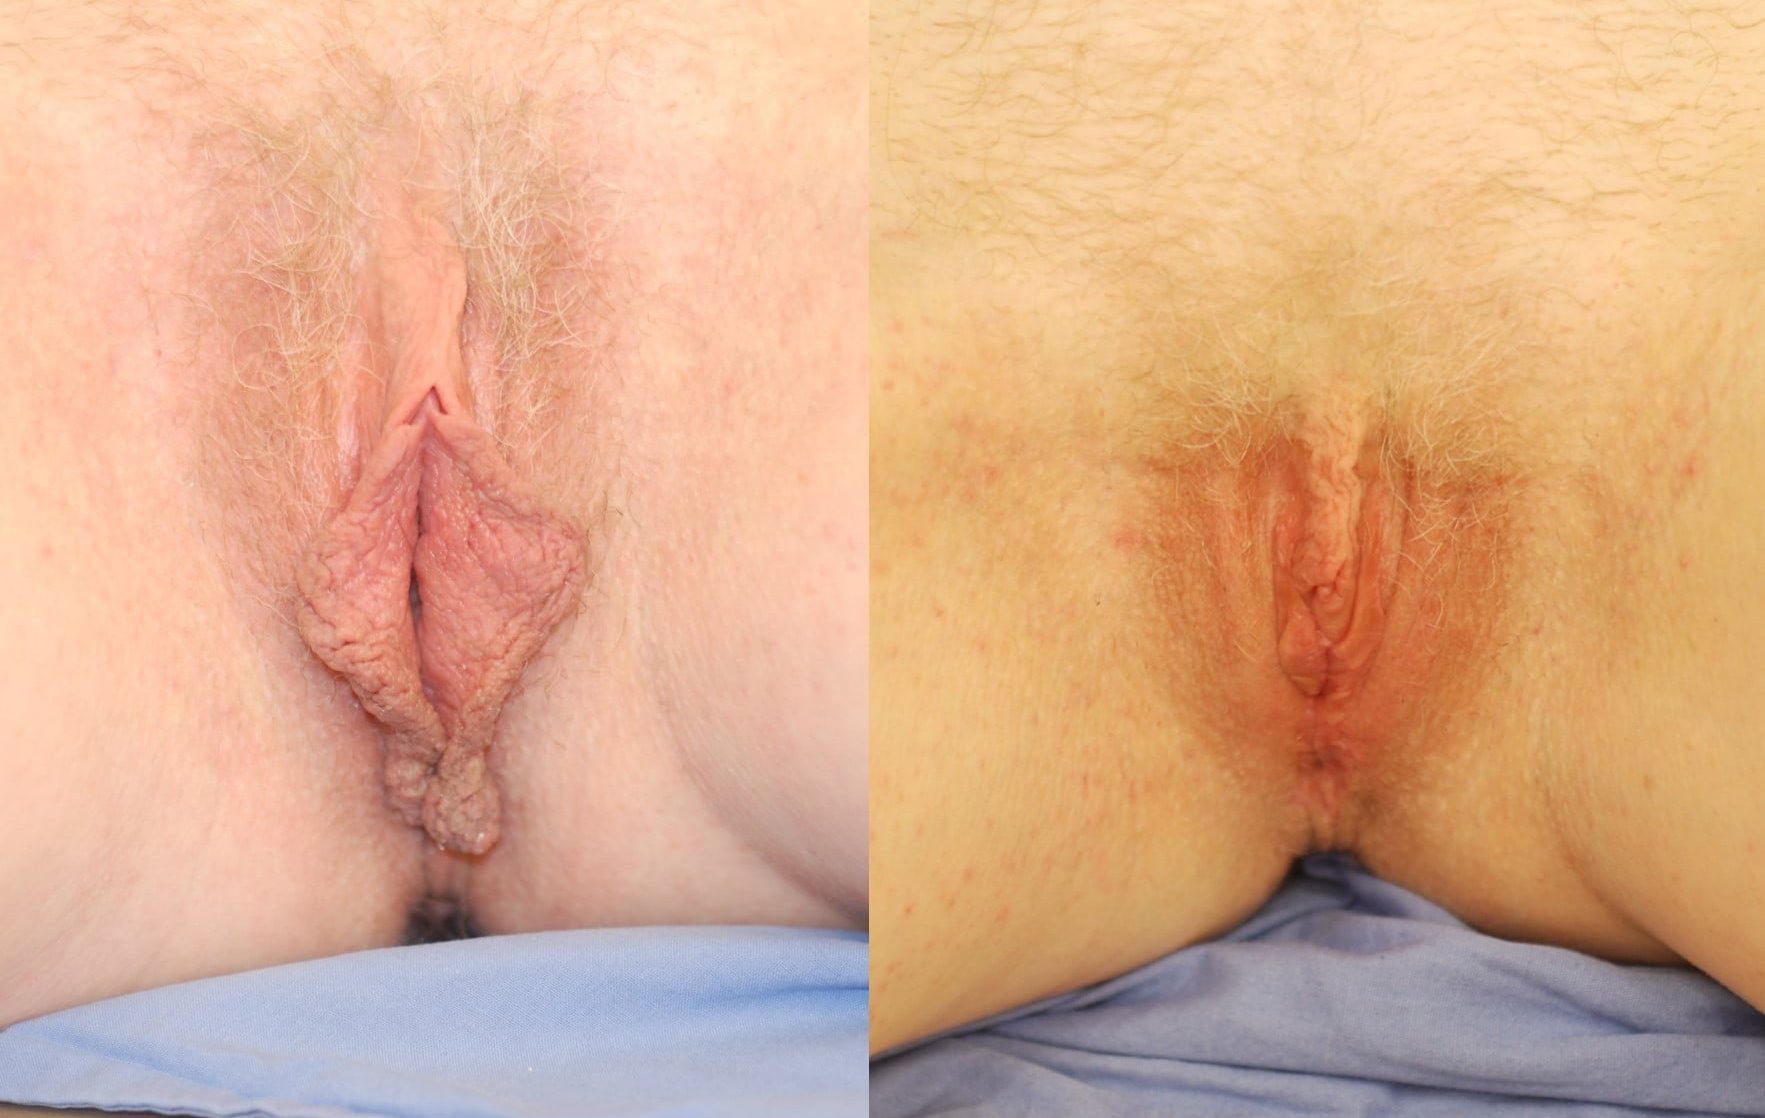 Actual patient of Dr. Devgan, before and 3 months after labiaplasty.Actual patient of Dr. Devgan, before and 3 months after labiaplasty. This is a middle-aged woman with labia minora excess and perineal   excess,  corrected with a combination of modified wedge technique and direct excision of perineal tissue.